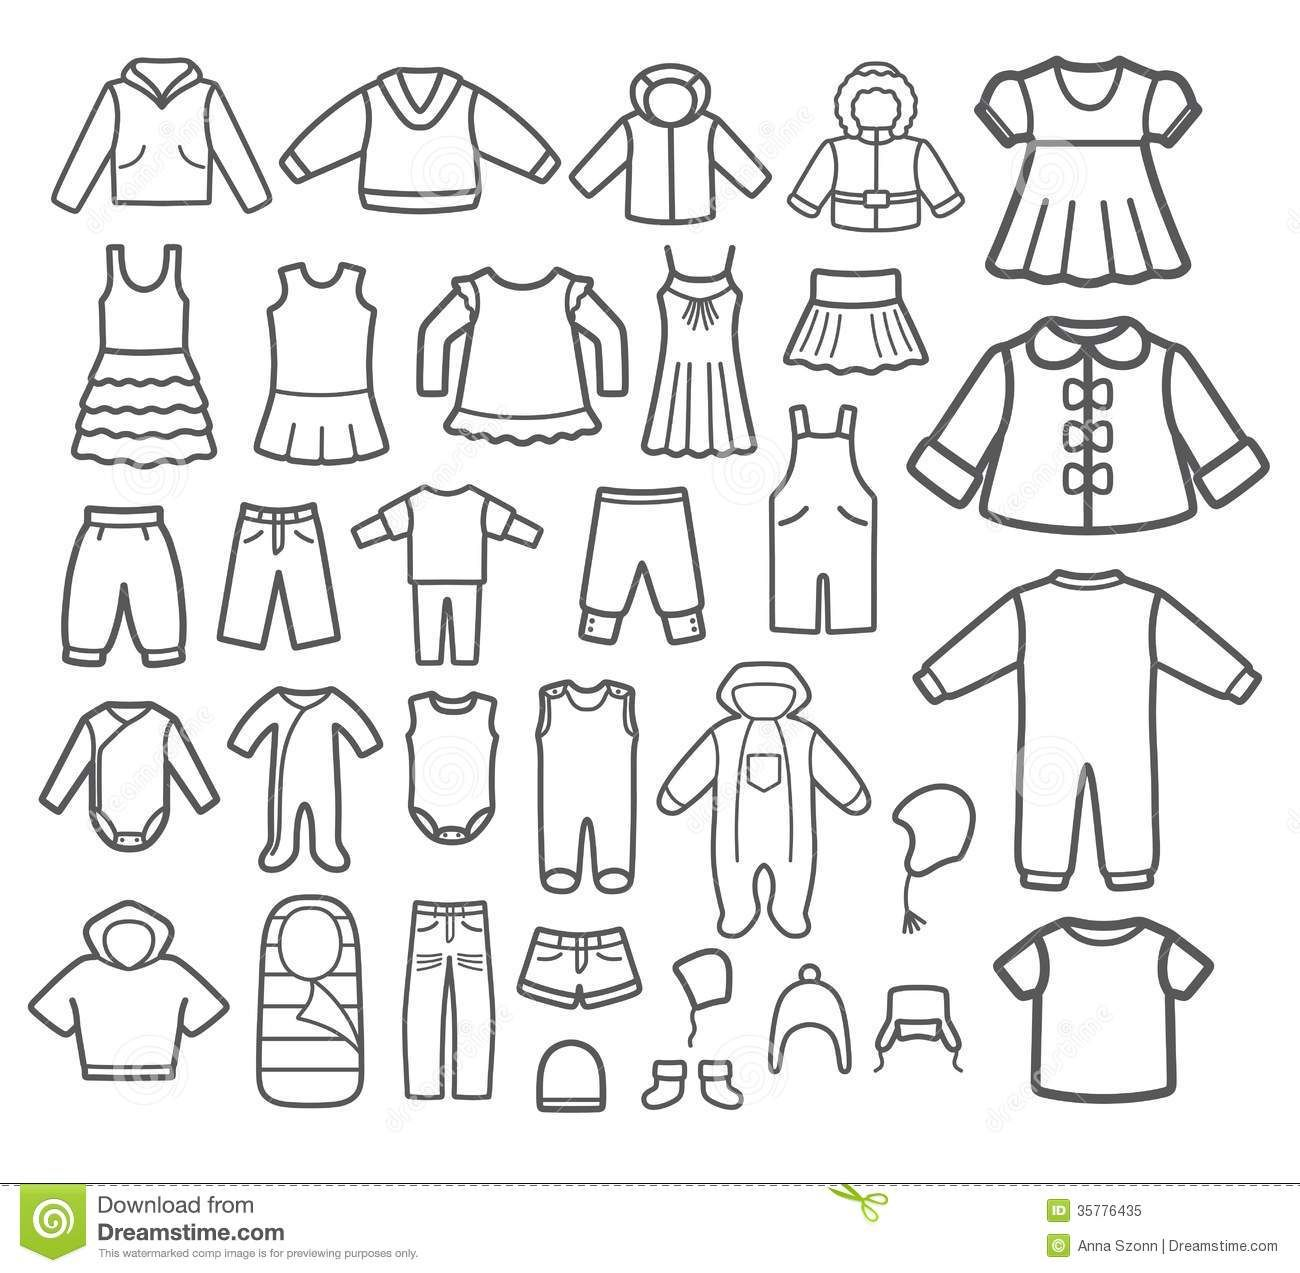 Image result for baby sleeper clipart Kids outfits, Kids